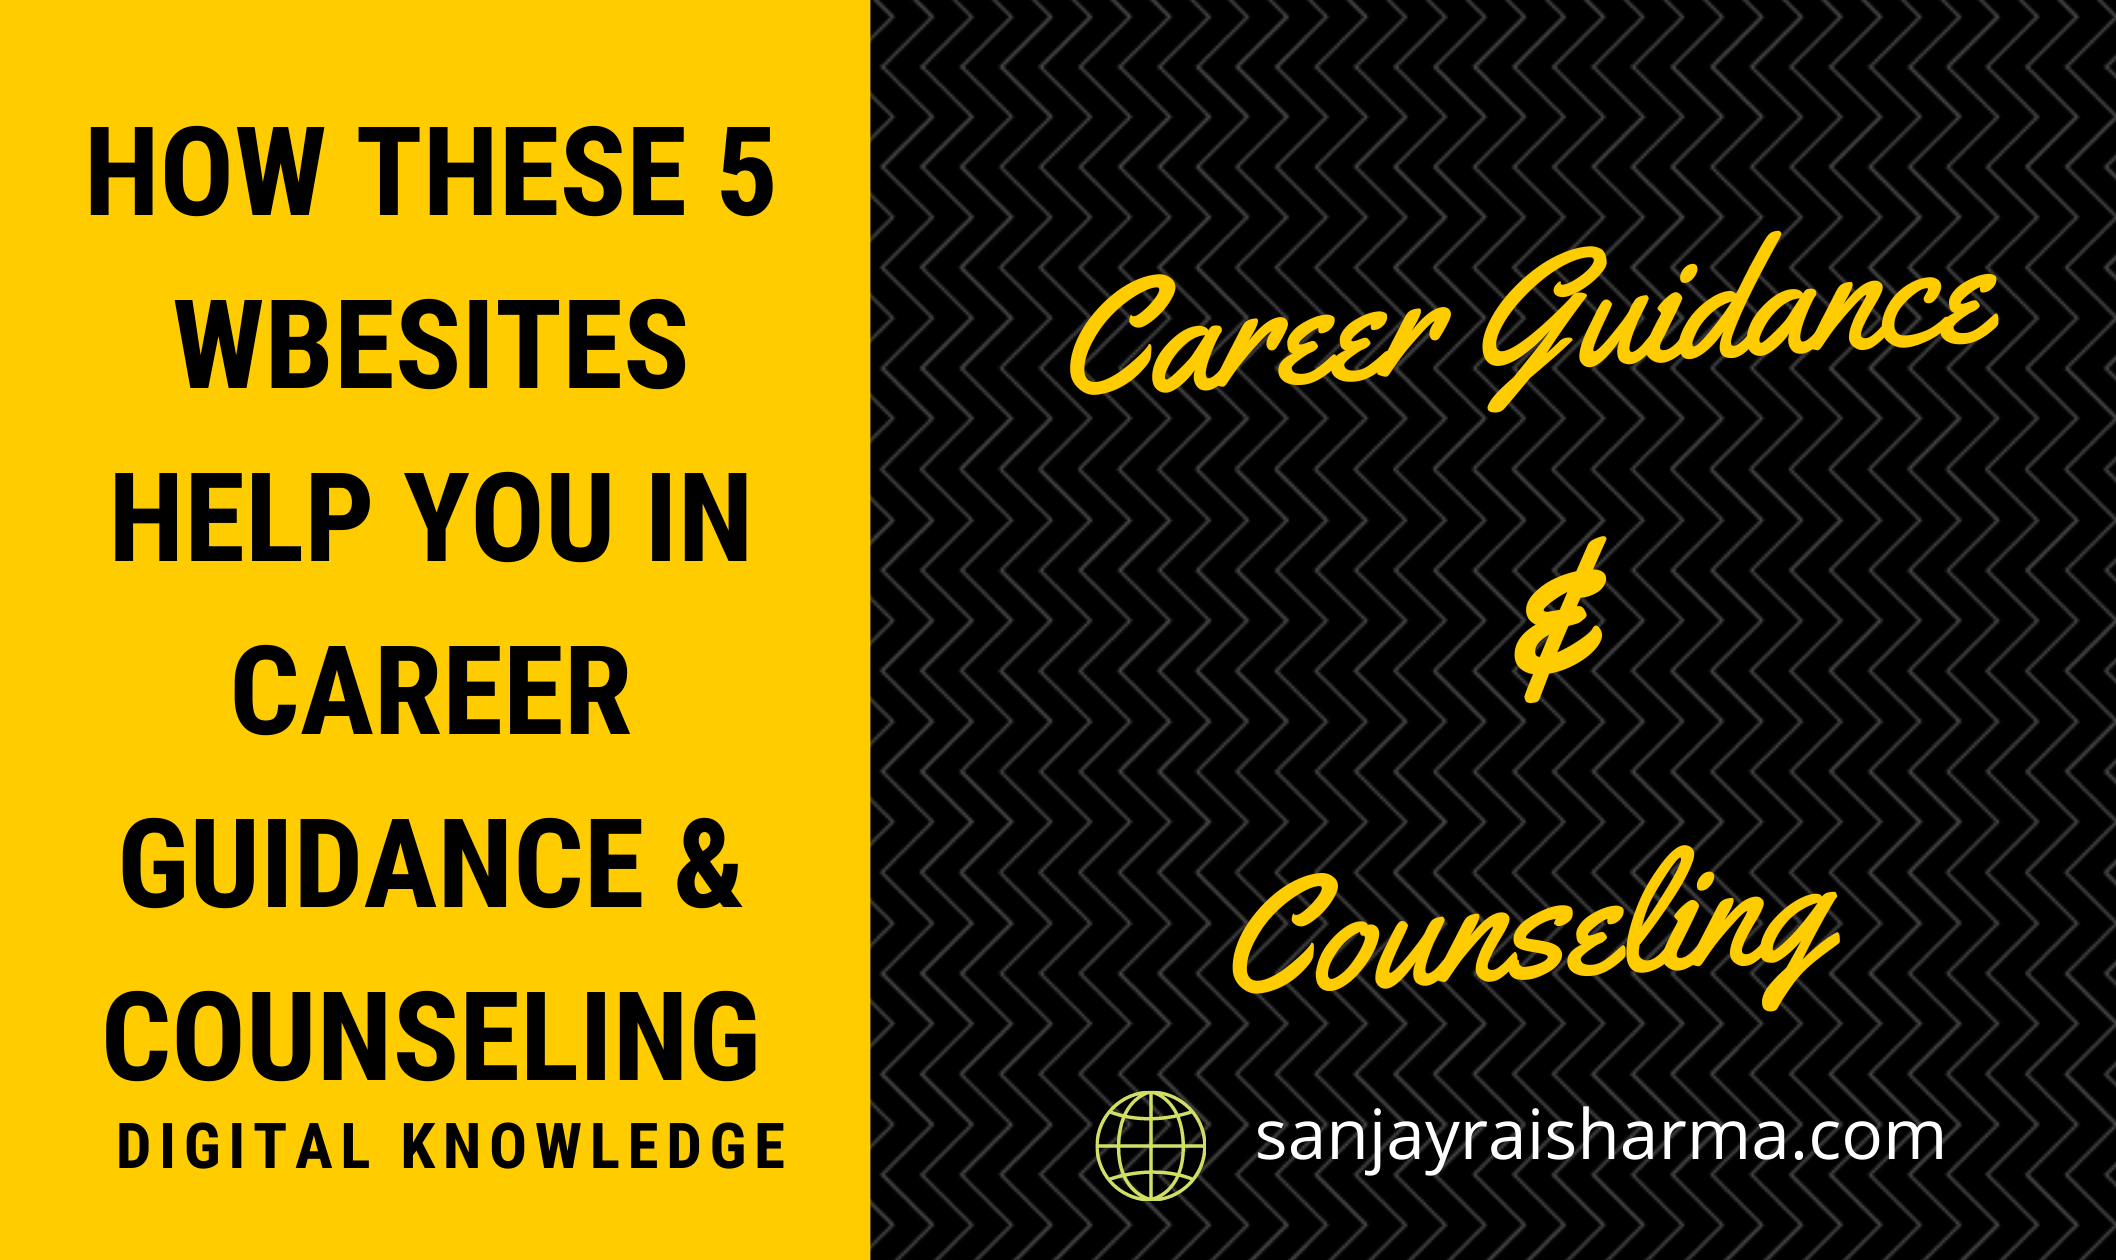 How these 5 websites help you in career guidance and counseling